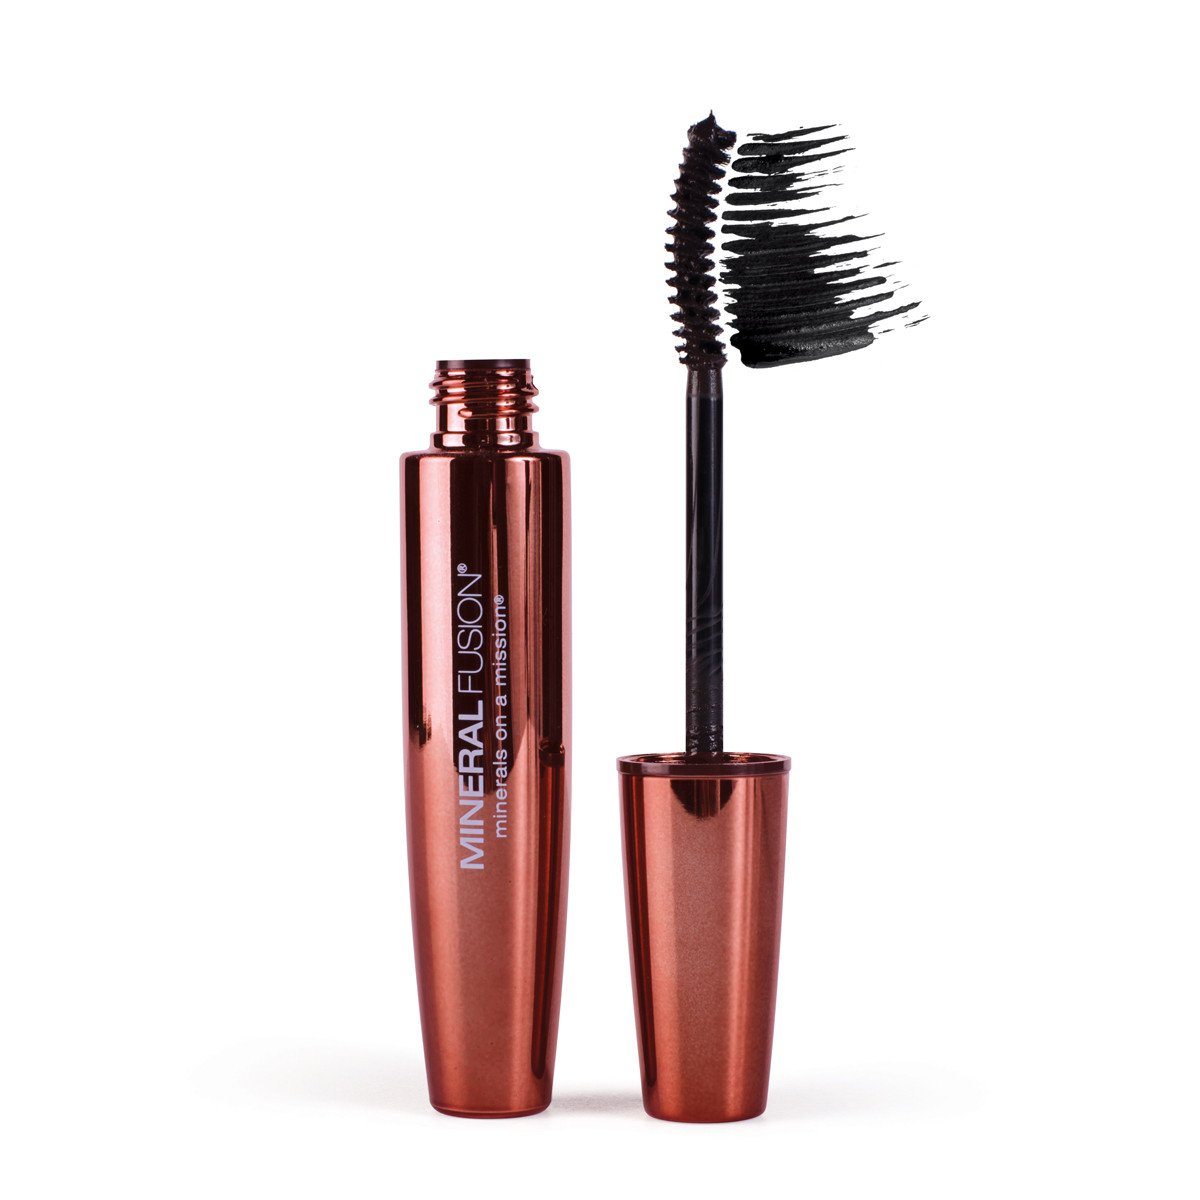 Mineral Fusion Lash Curling Mineral Mascara in Gravity